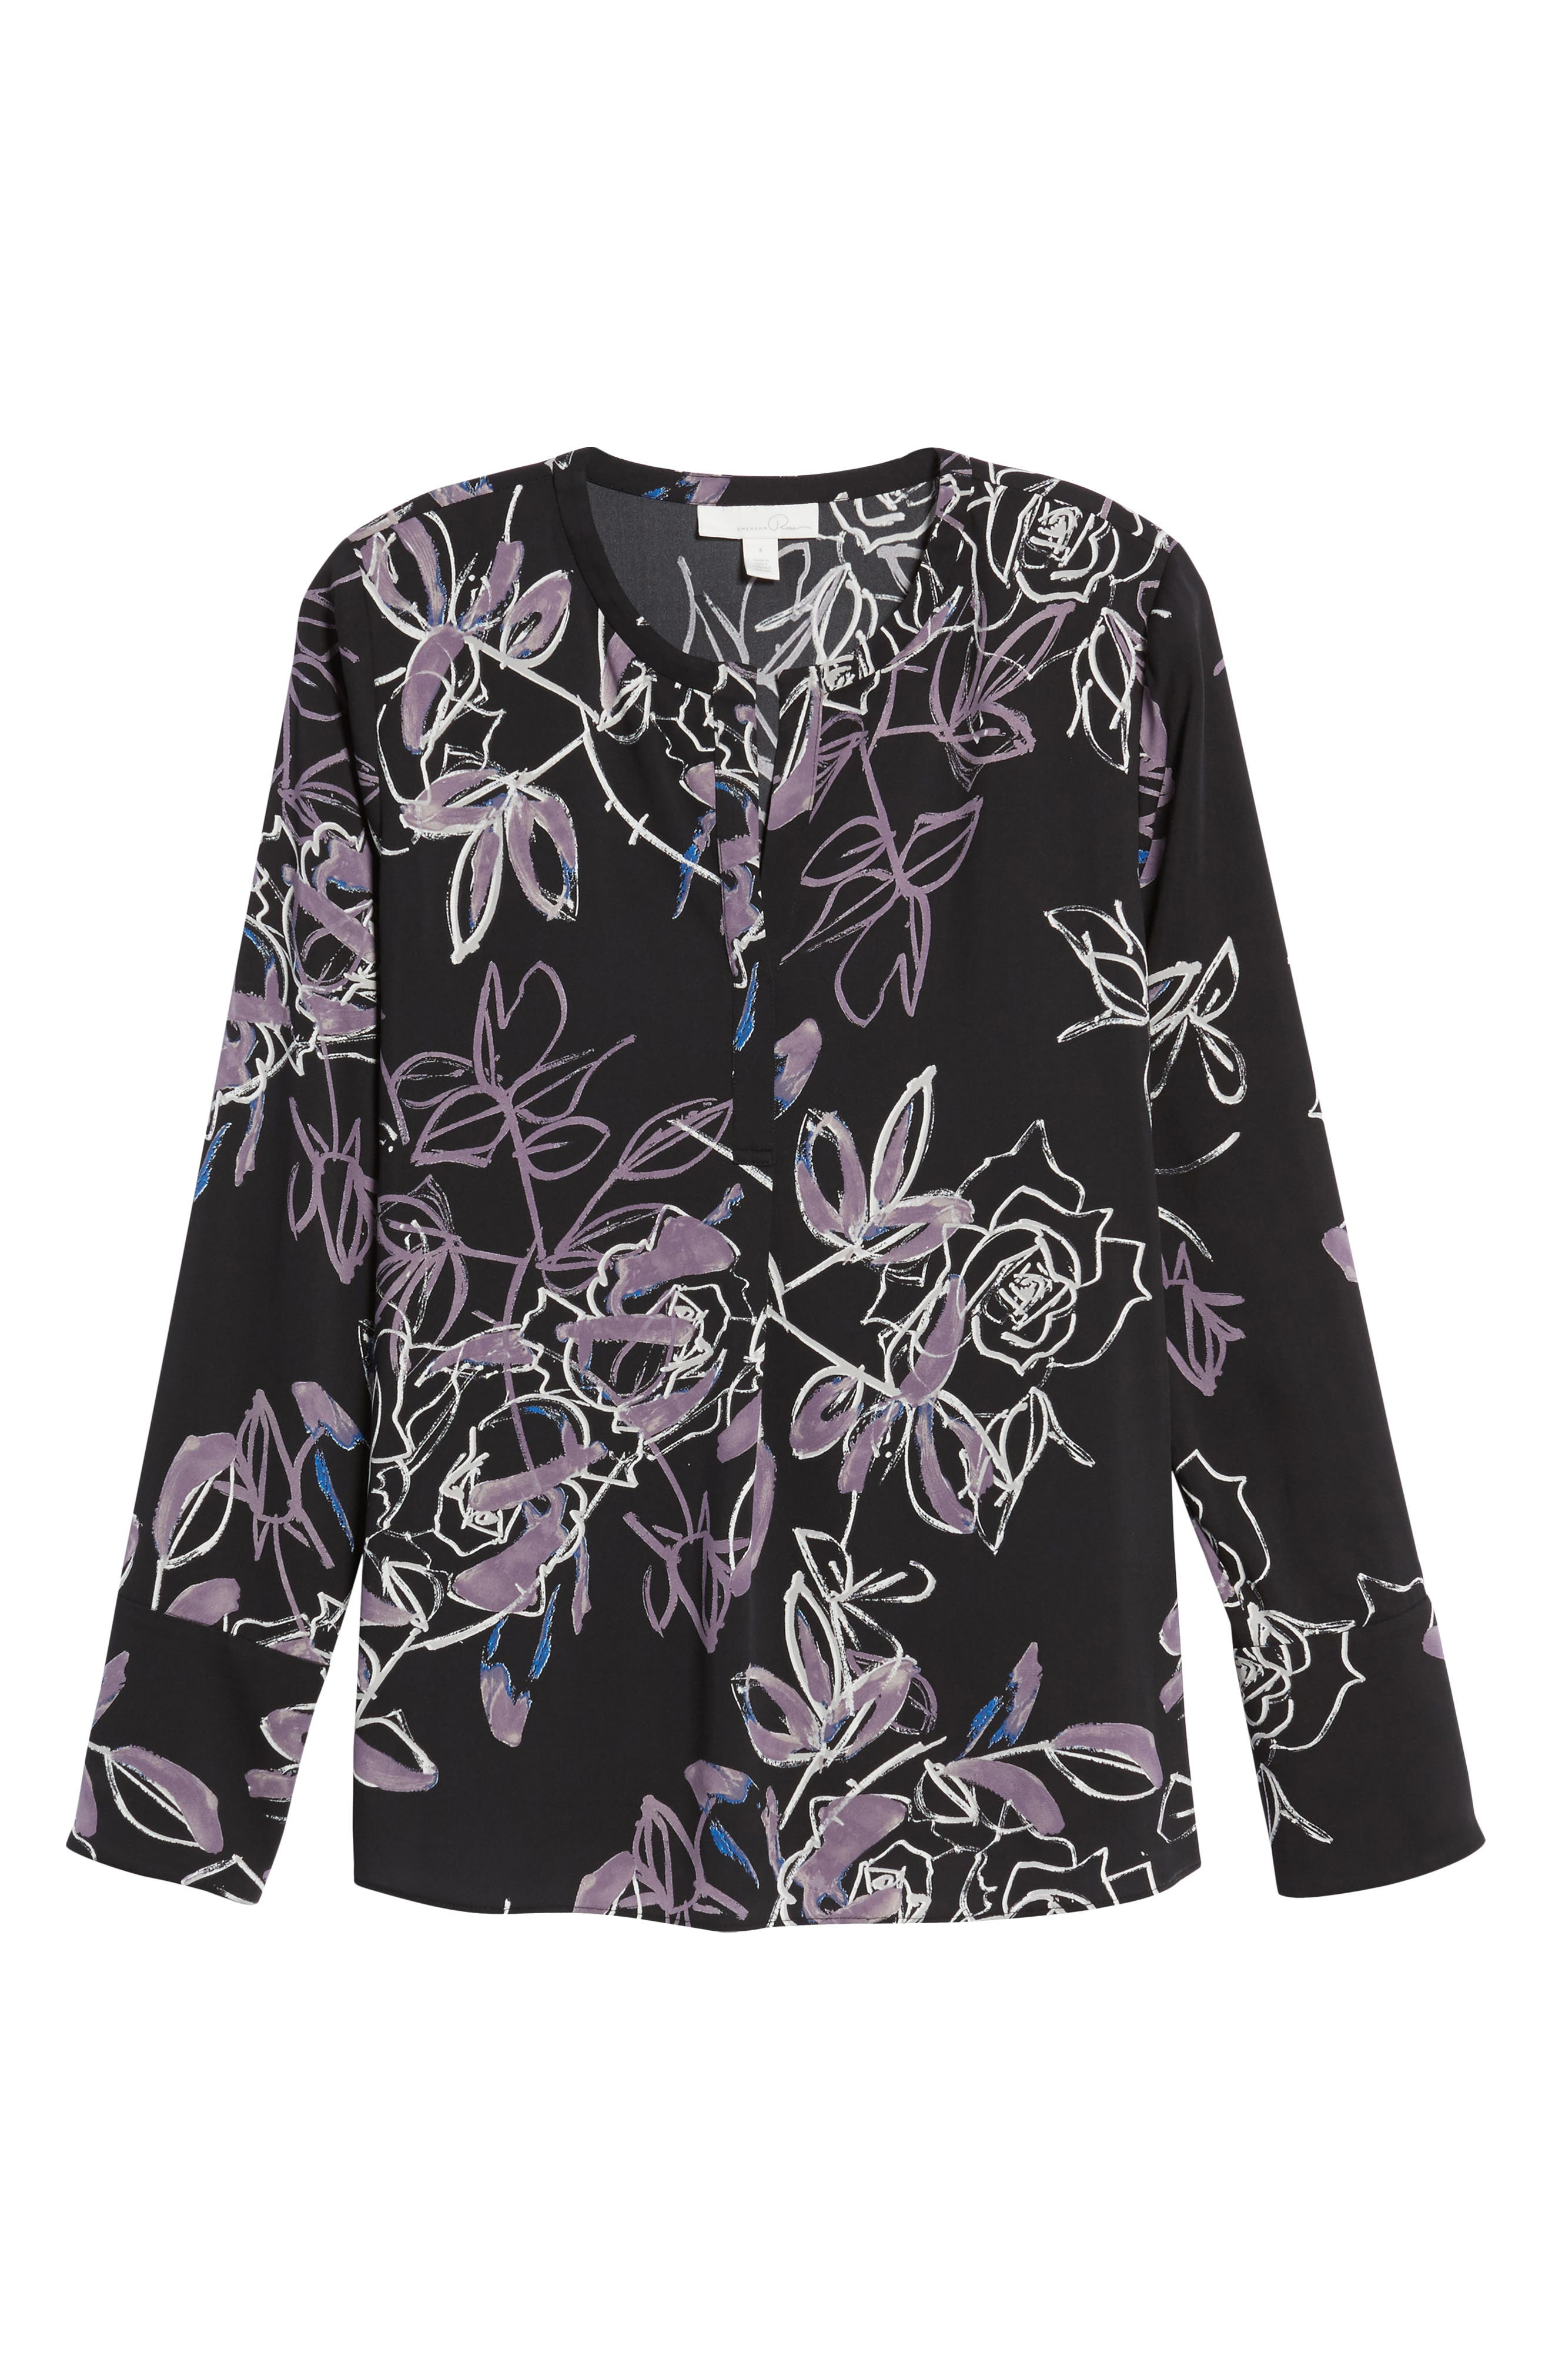 Long Sleeve Print Blouse,                             Alternate thumbnail 6, color,                             001